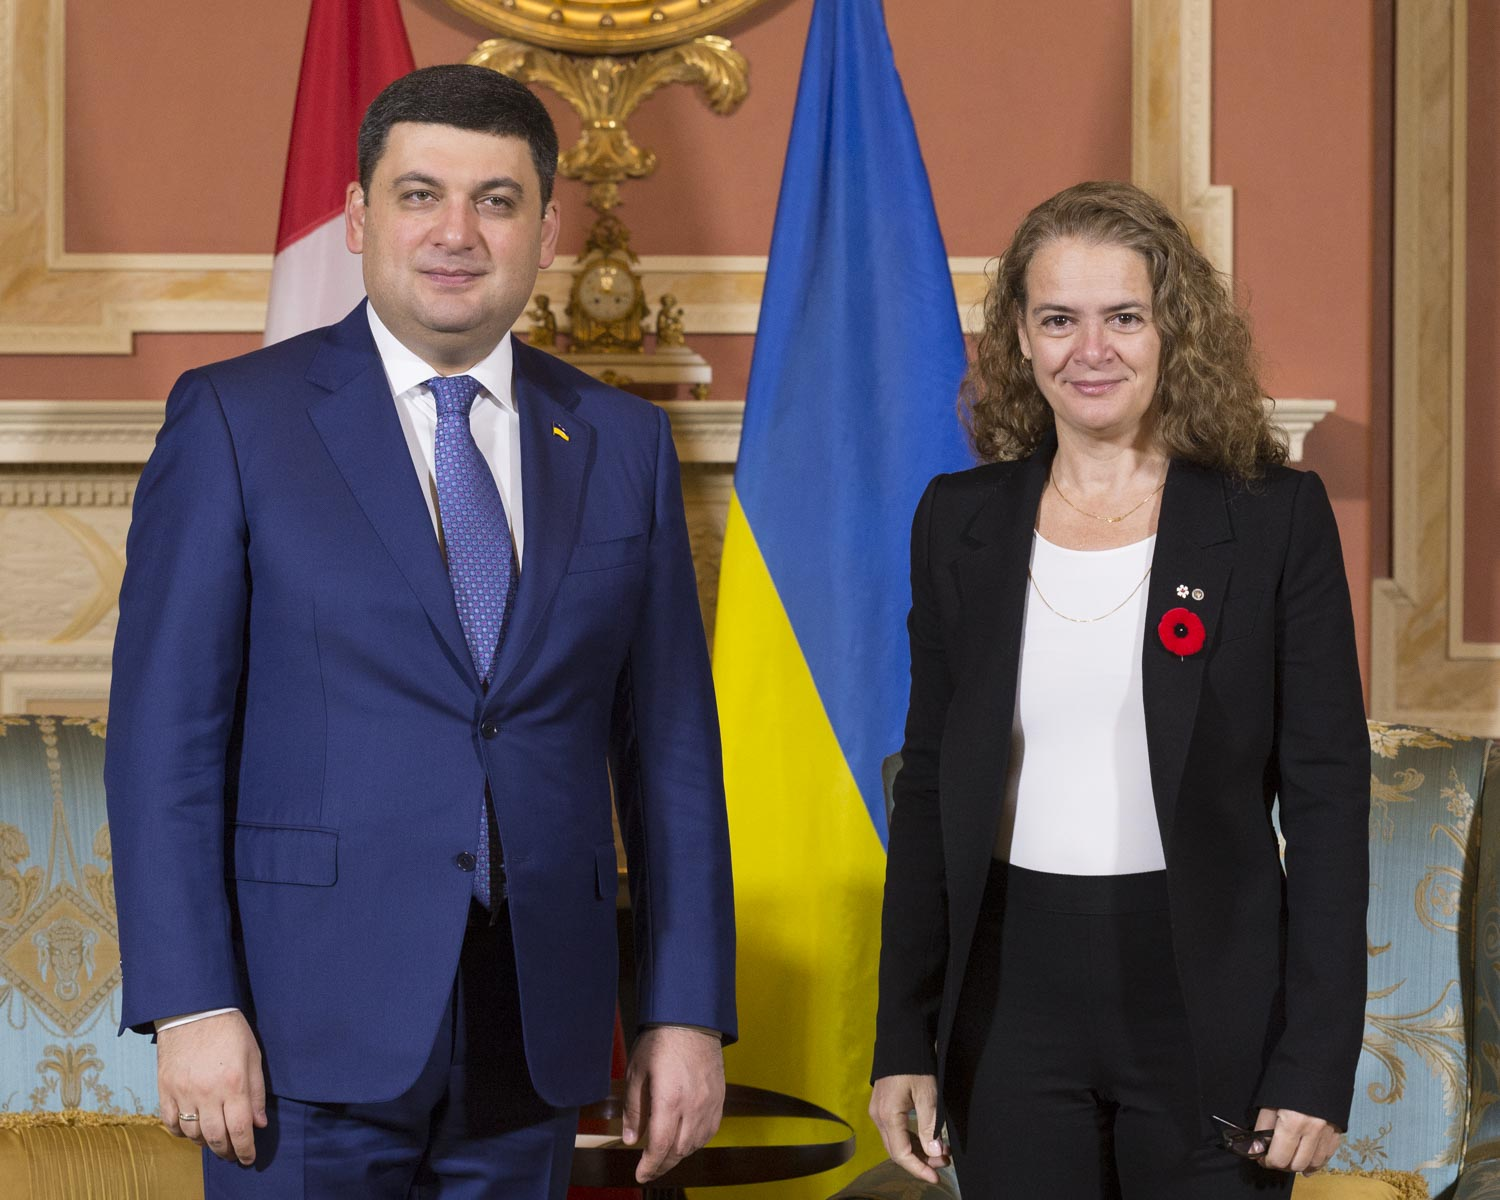 Canada and Ukraine enjoy close relations rooted in the 1.3 million Canadians of Ukrainian heritage.